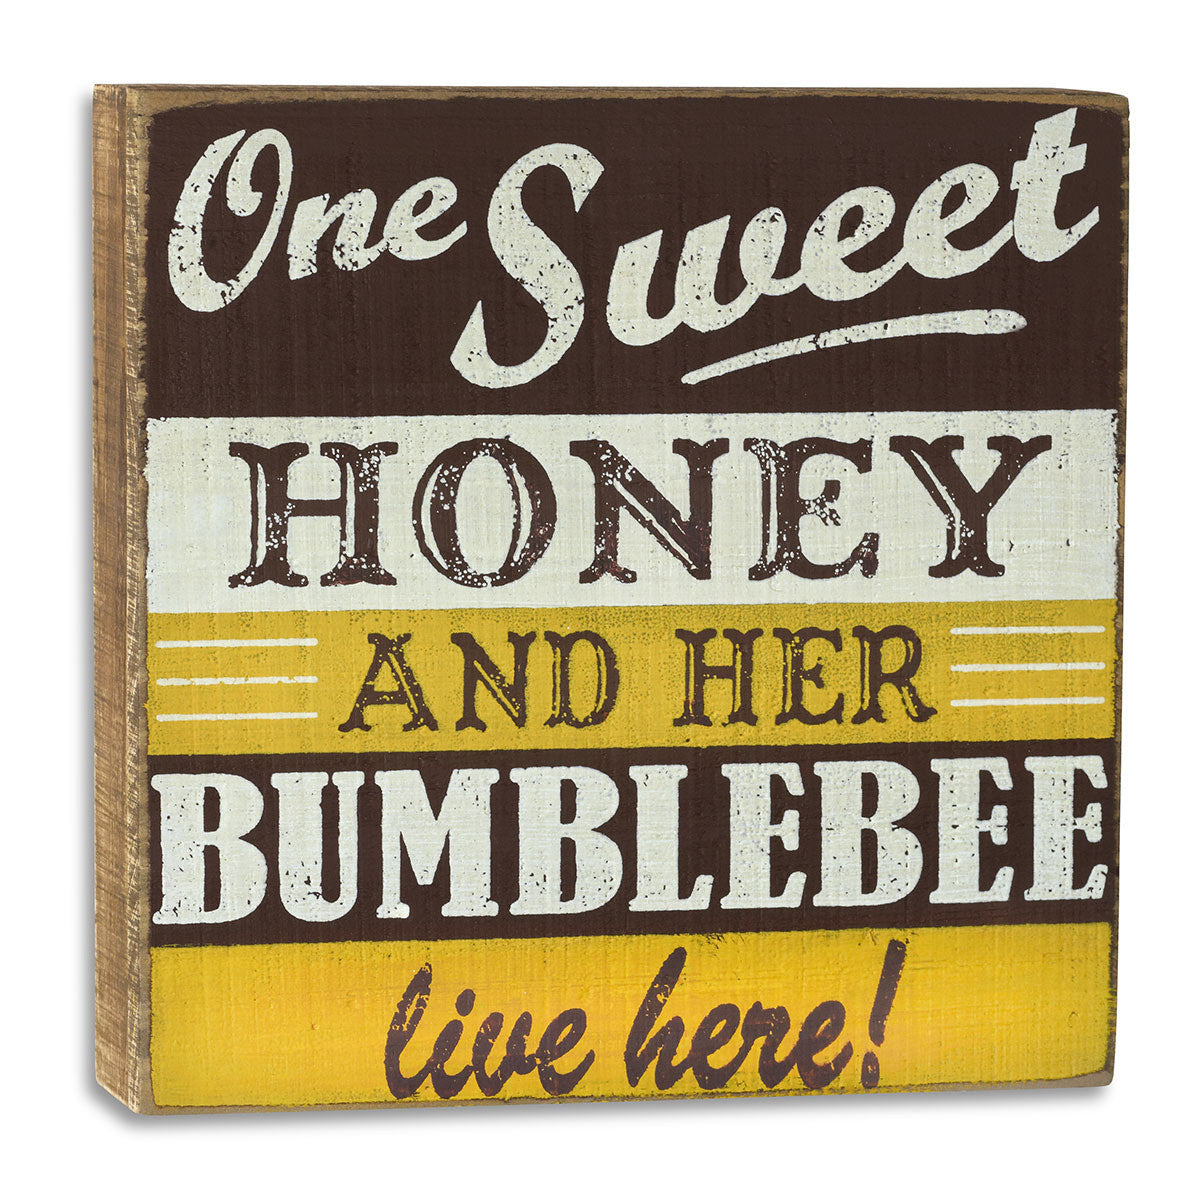 Amazing Bumble Bee Wall Decor Gallery - The Wall Art Decorations ...